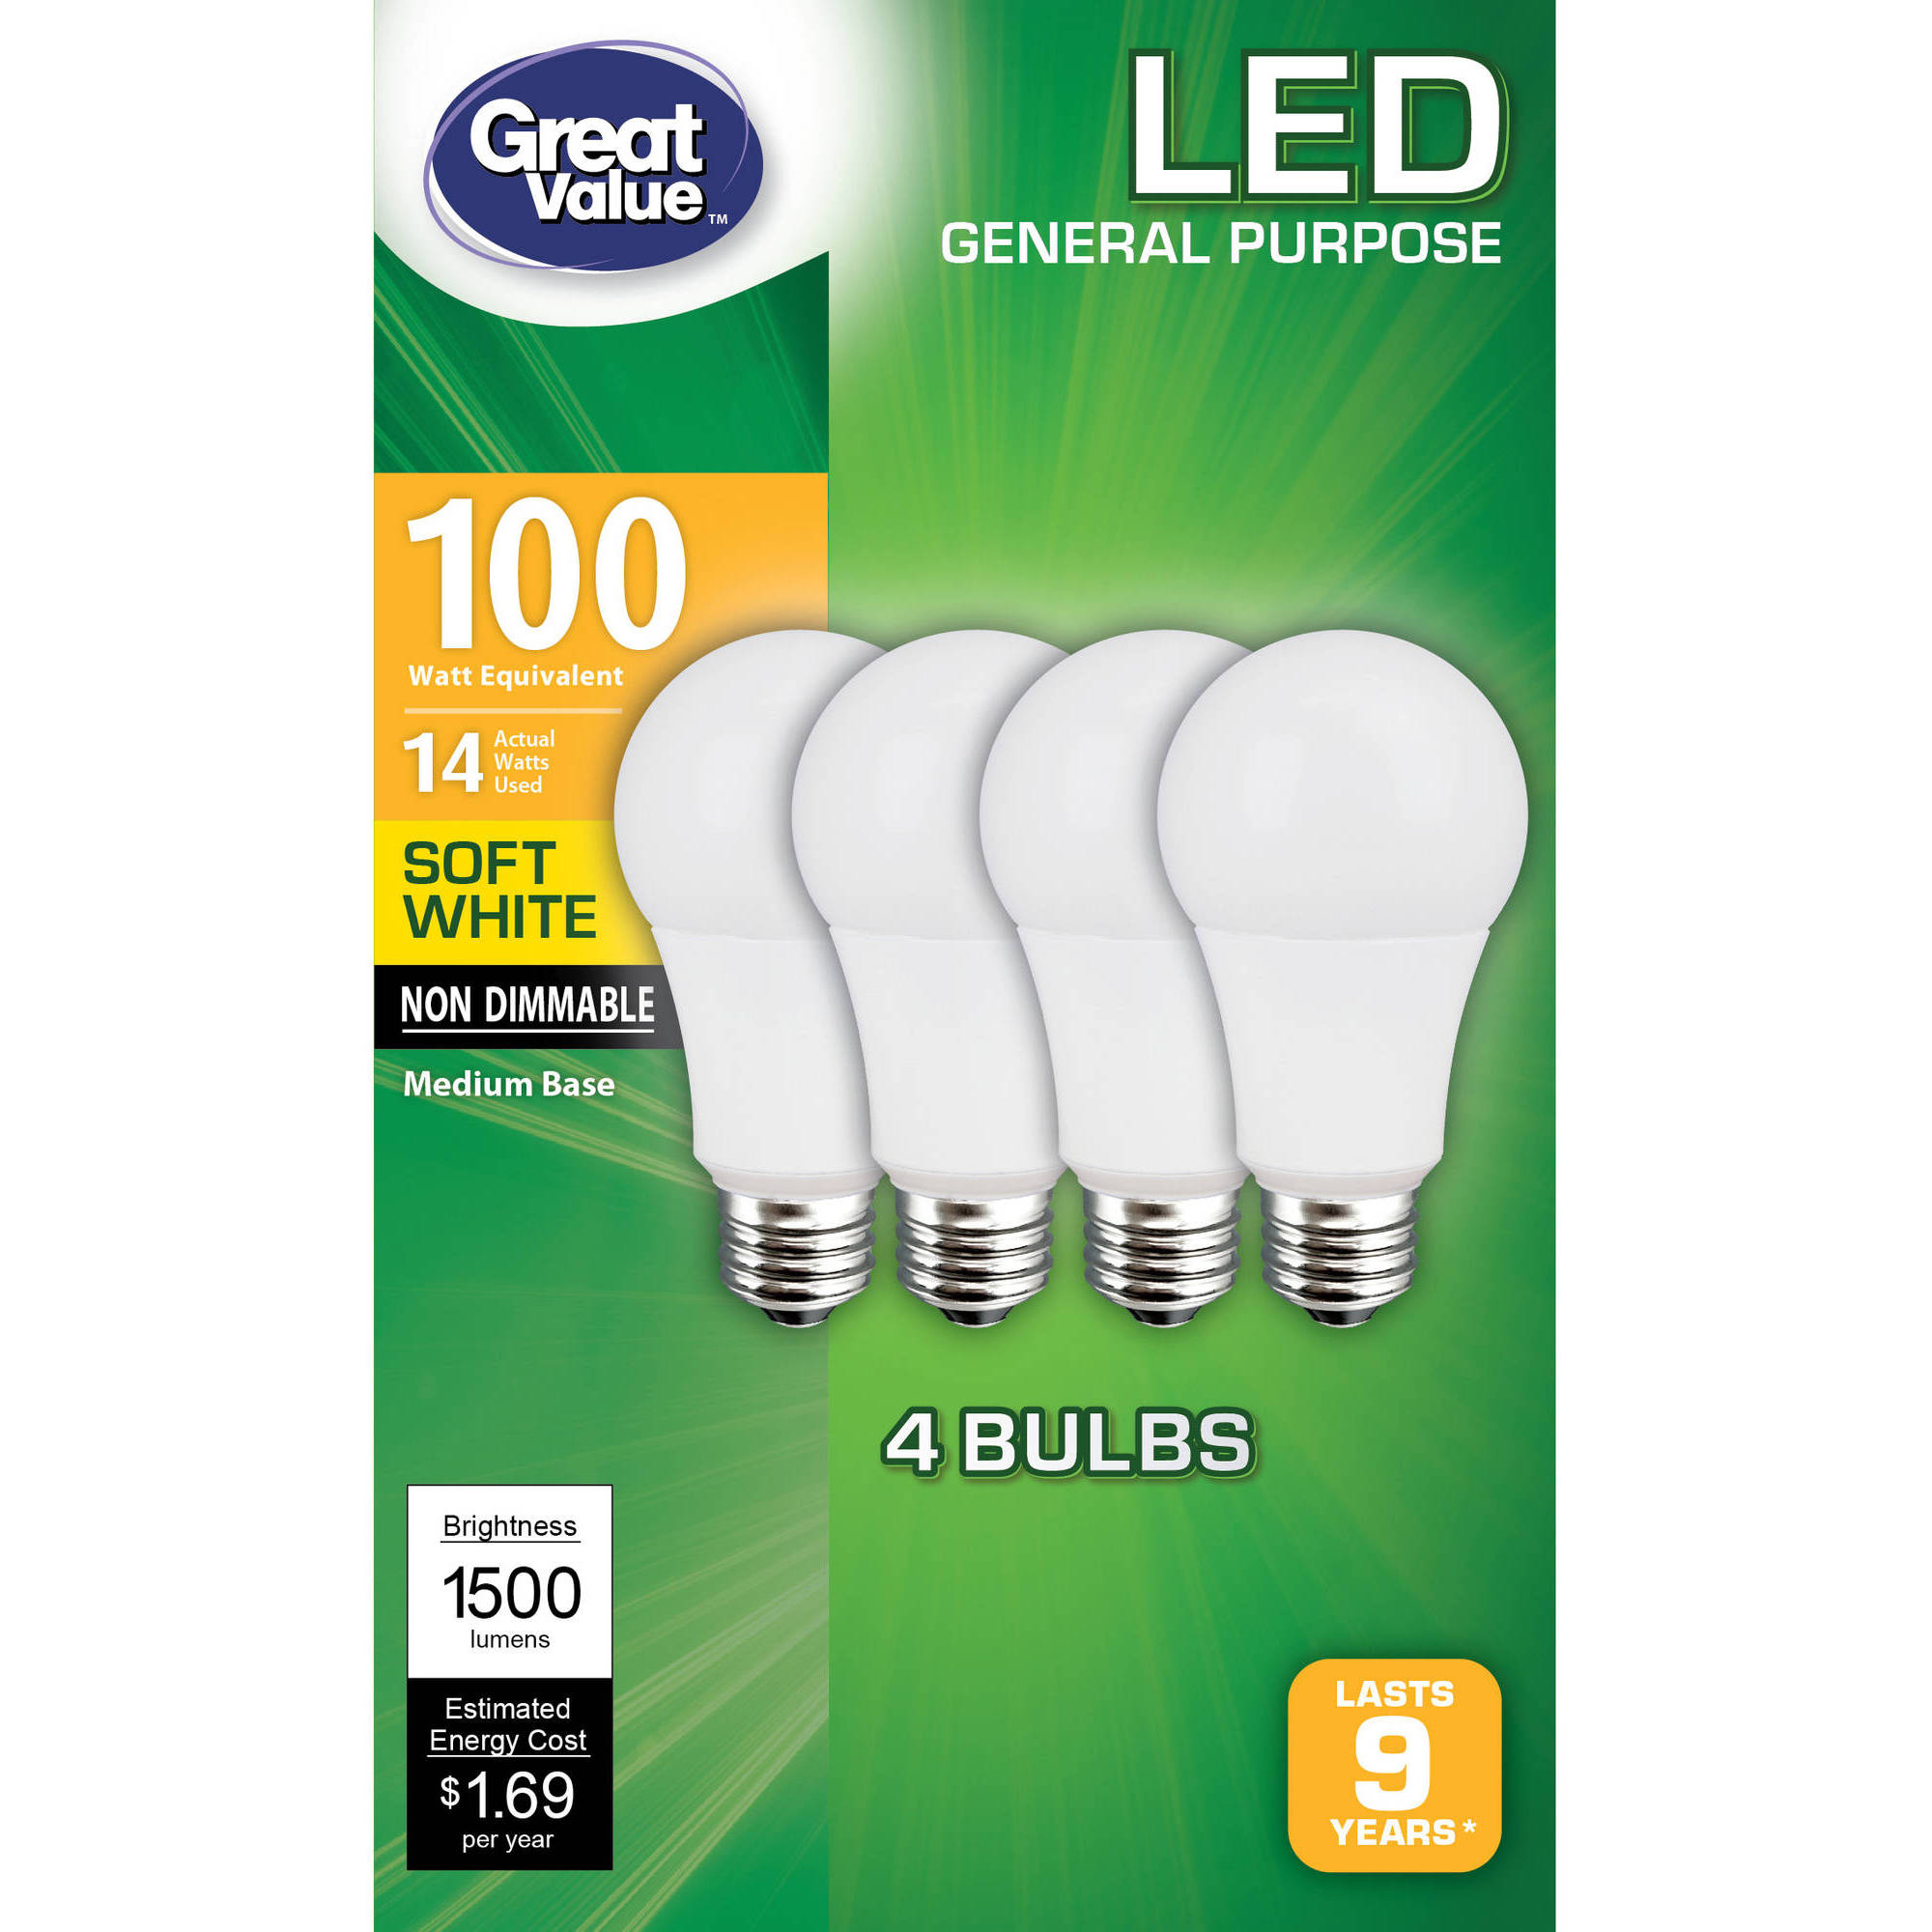 Great Value General Purpose LED Light Bulbs, 14W (100W Equivalent), Soft  White